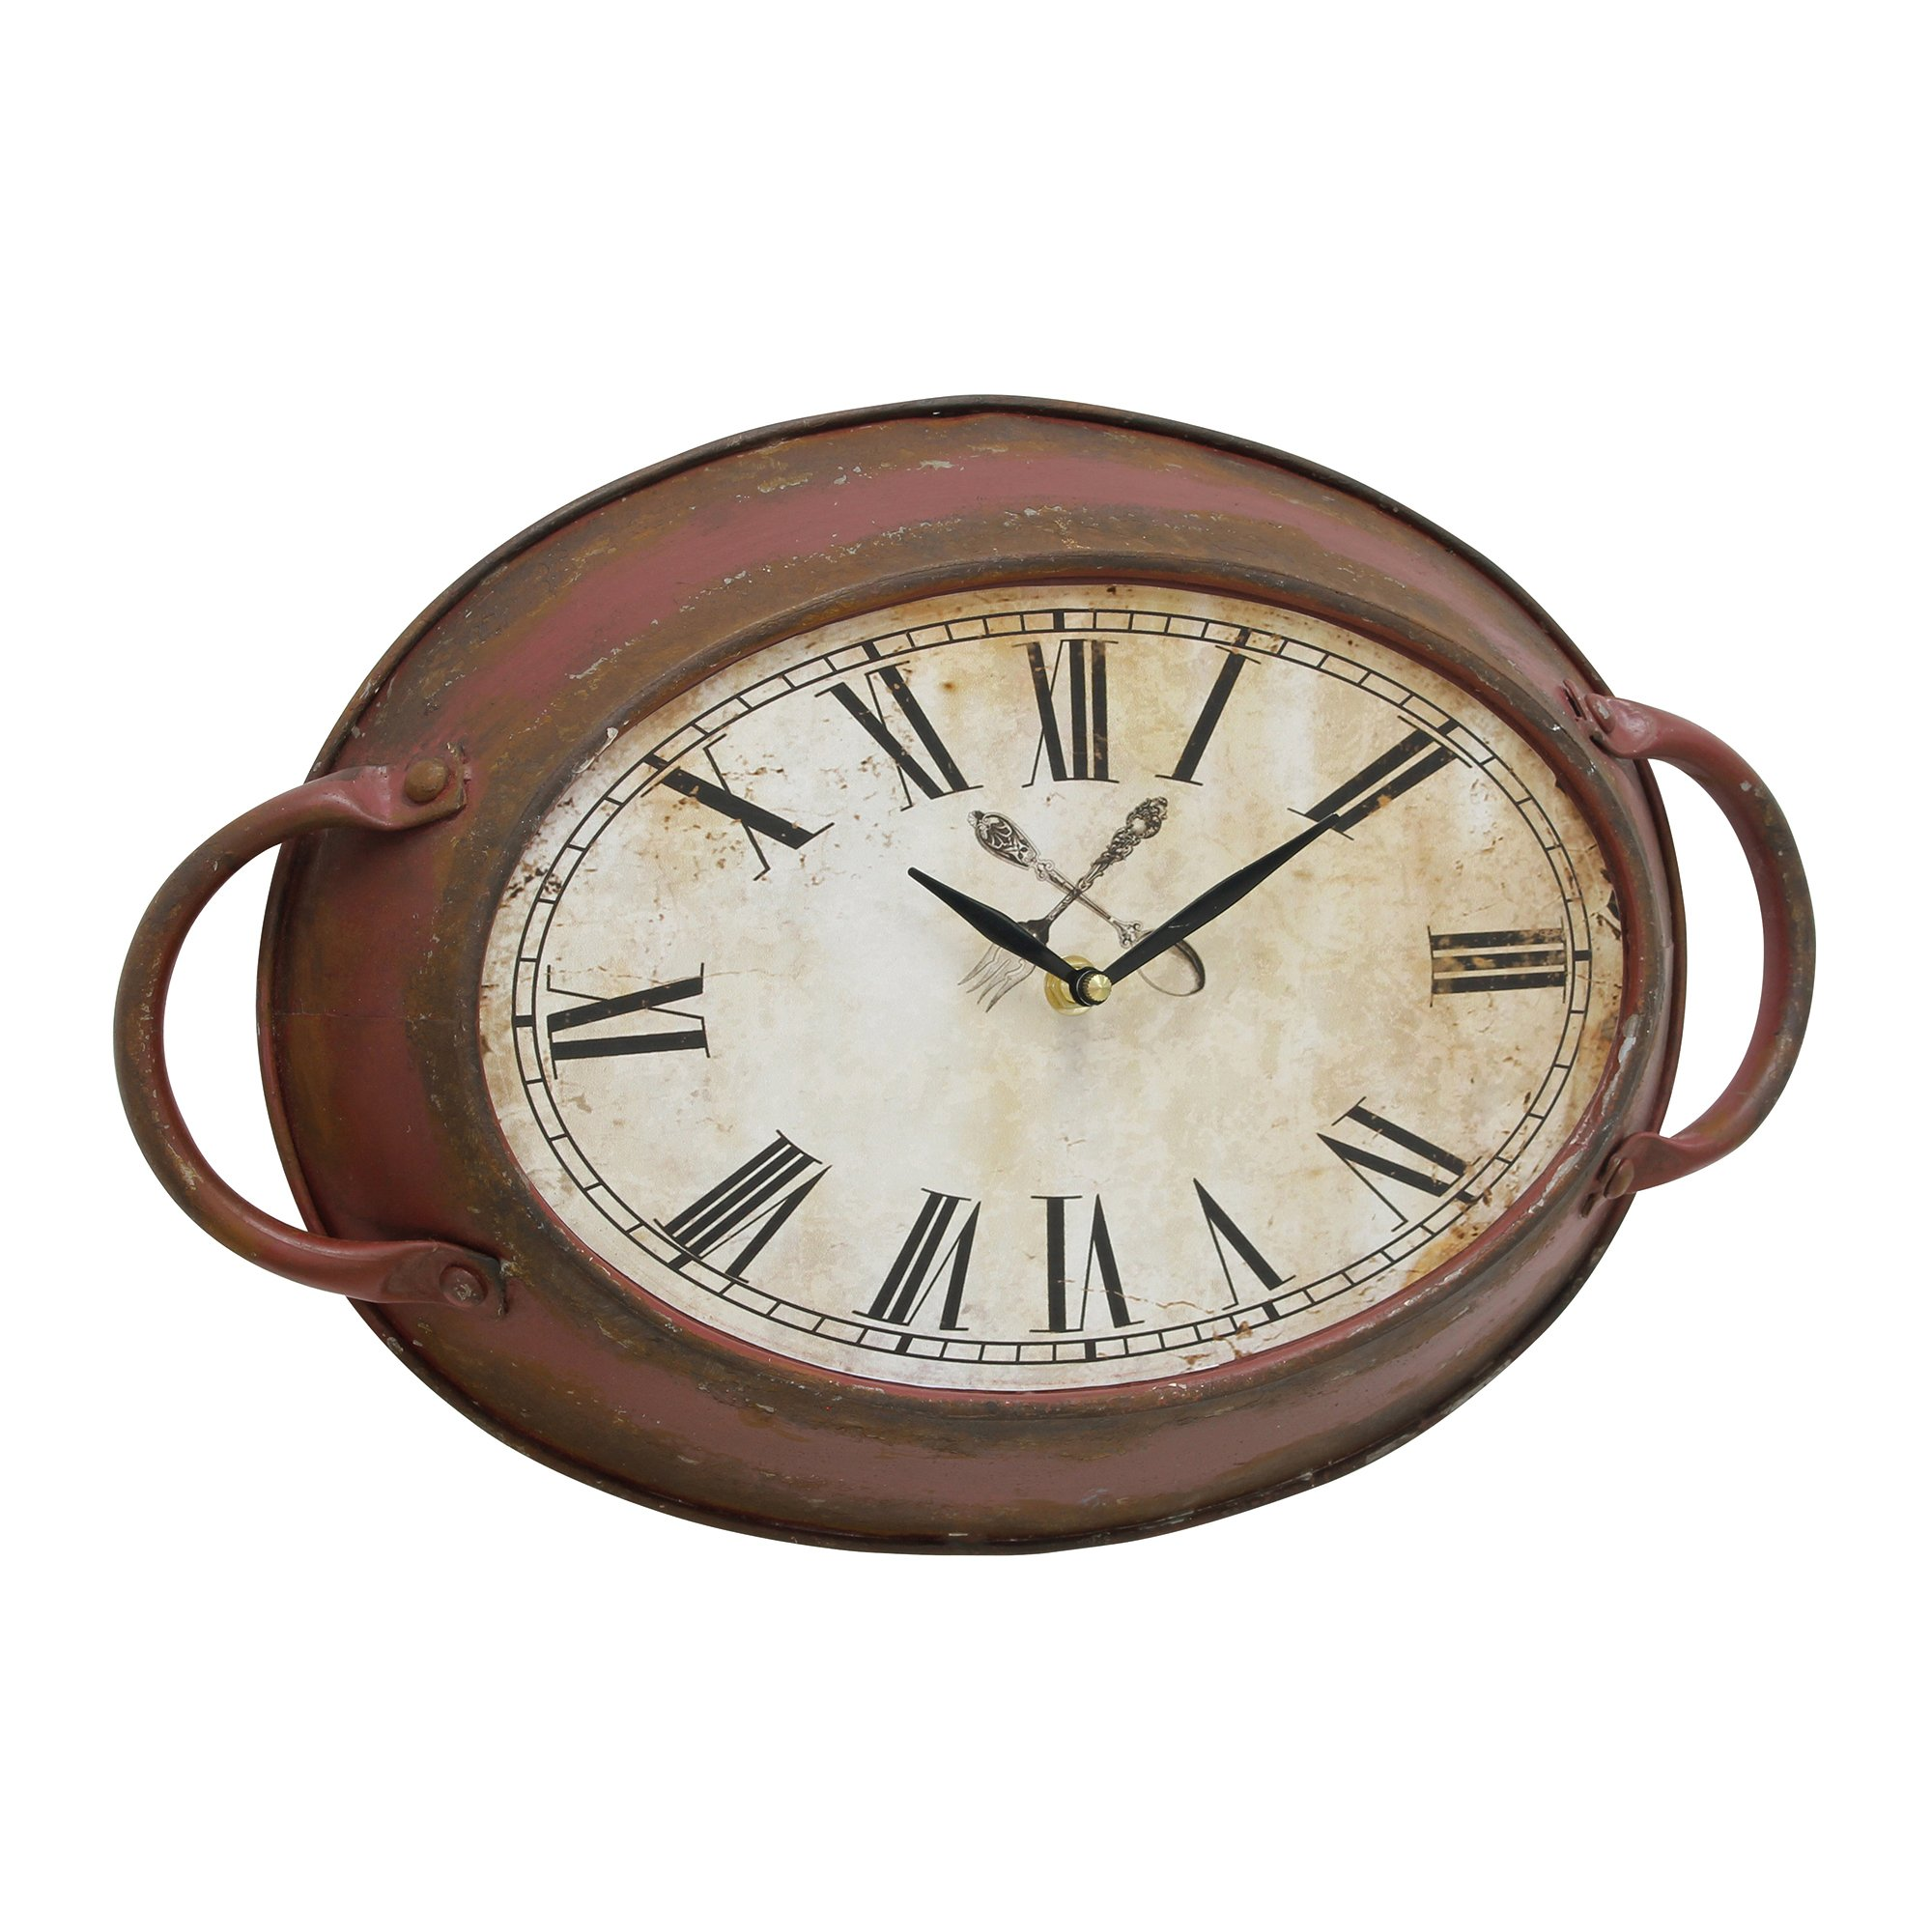 Stonebriar Rustic Farmhouse Oval Metal Wall Clock with Red Rust Finish, Shabby Chic and DIY Home Decor Accents for the Kitchen, Living Room, and Bedroom, Battery Operated by Stonebriar (Image #1)